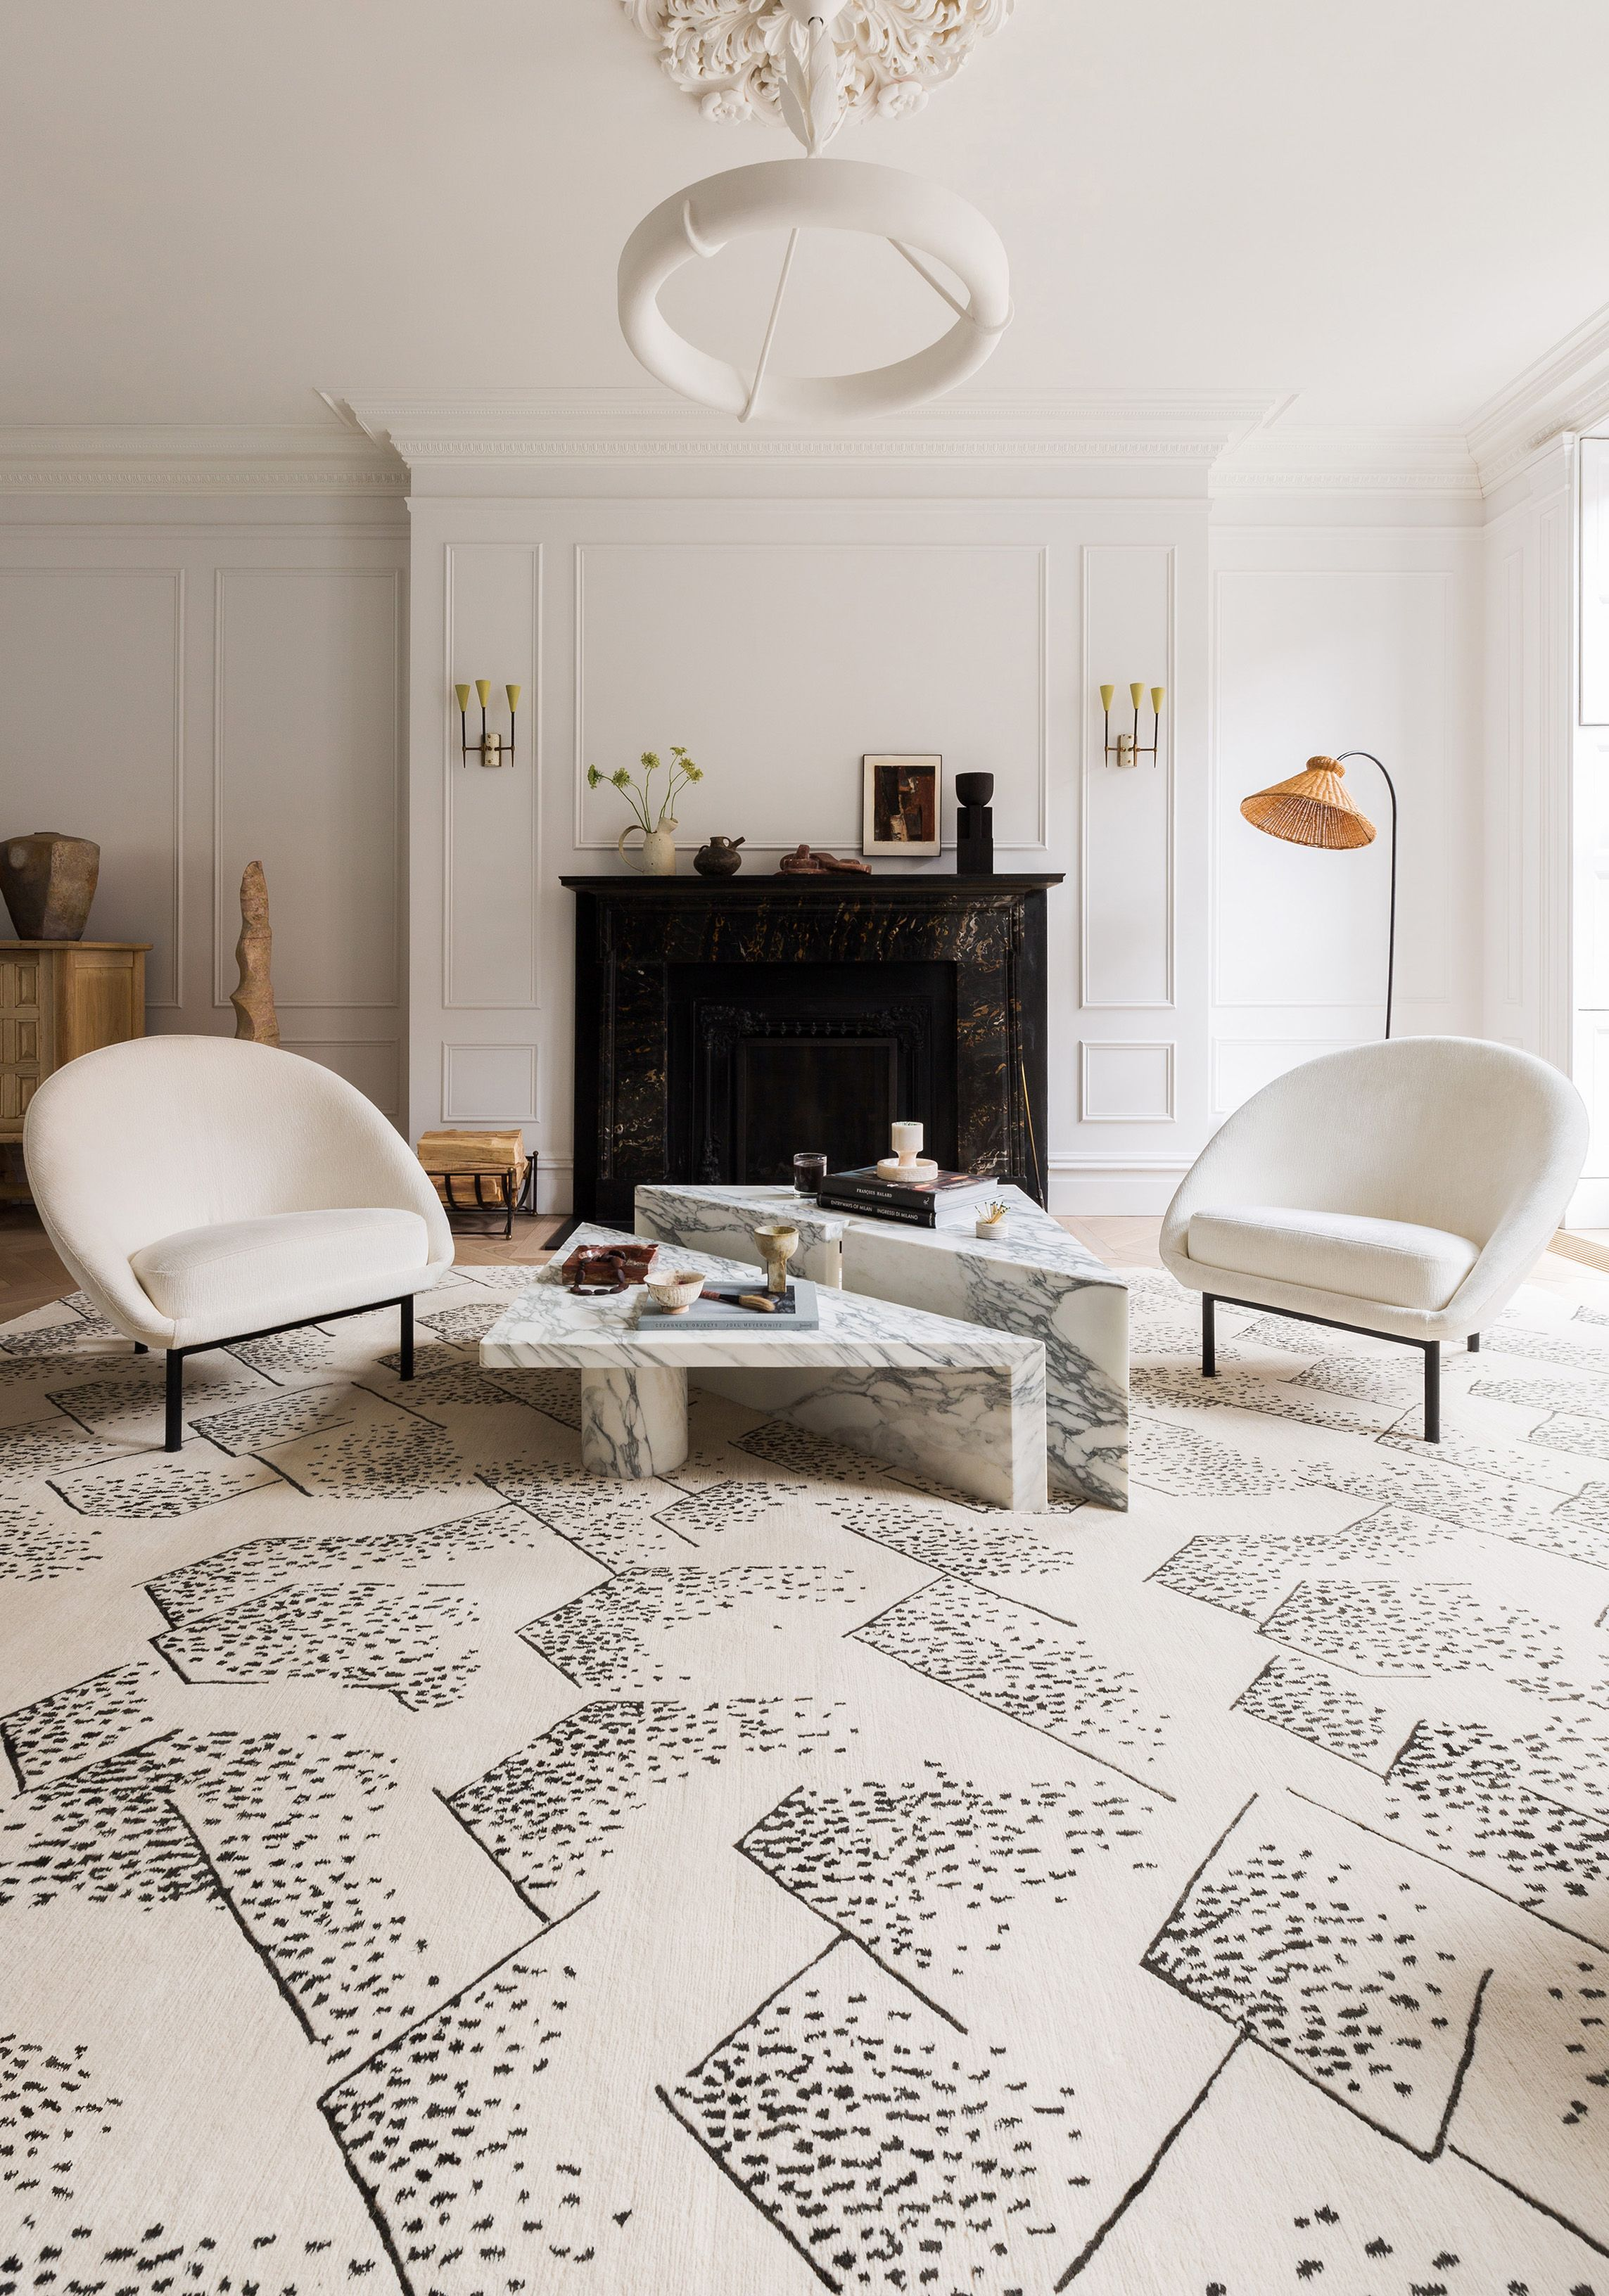 Brink Delicately Balances Geometry With Cascading Organic Dots To Create A Unique Rug That Is Both Structure Furniture Design Contemporary Furniture Home Decor